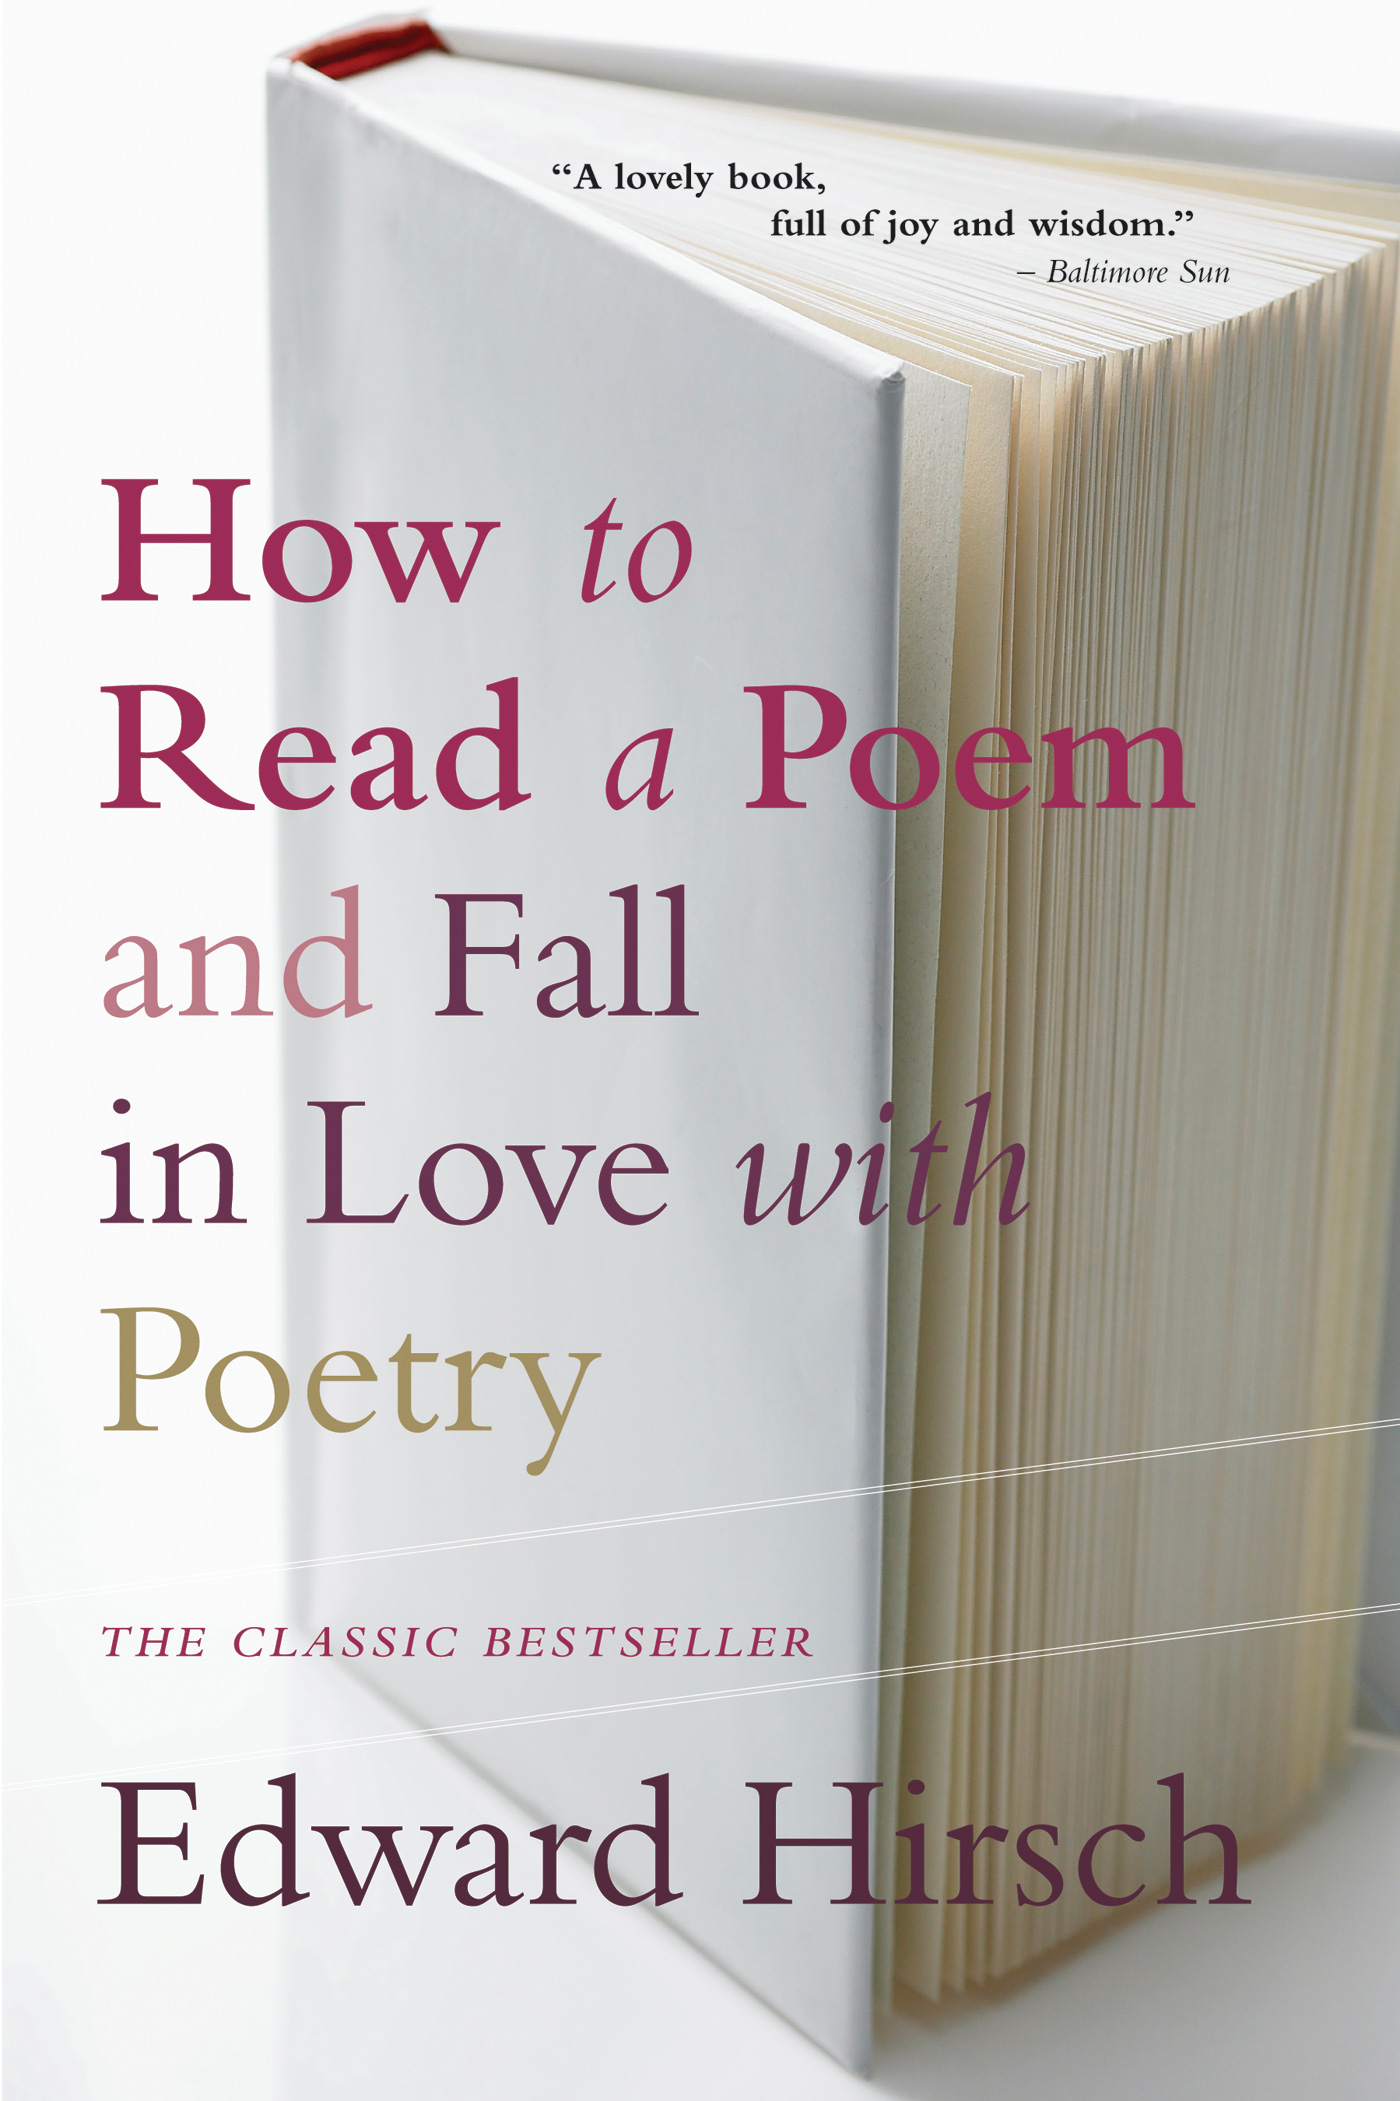 How to Read a Poem-9780156005661